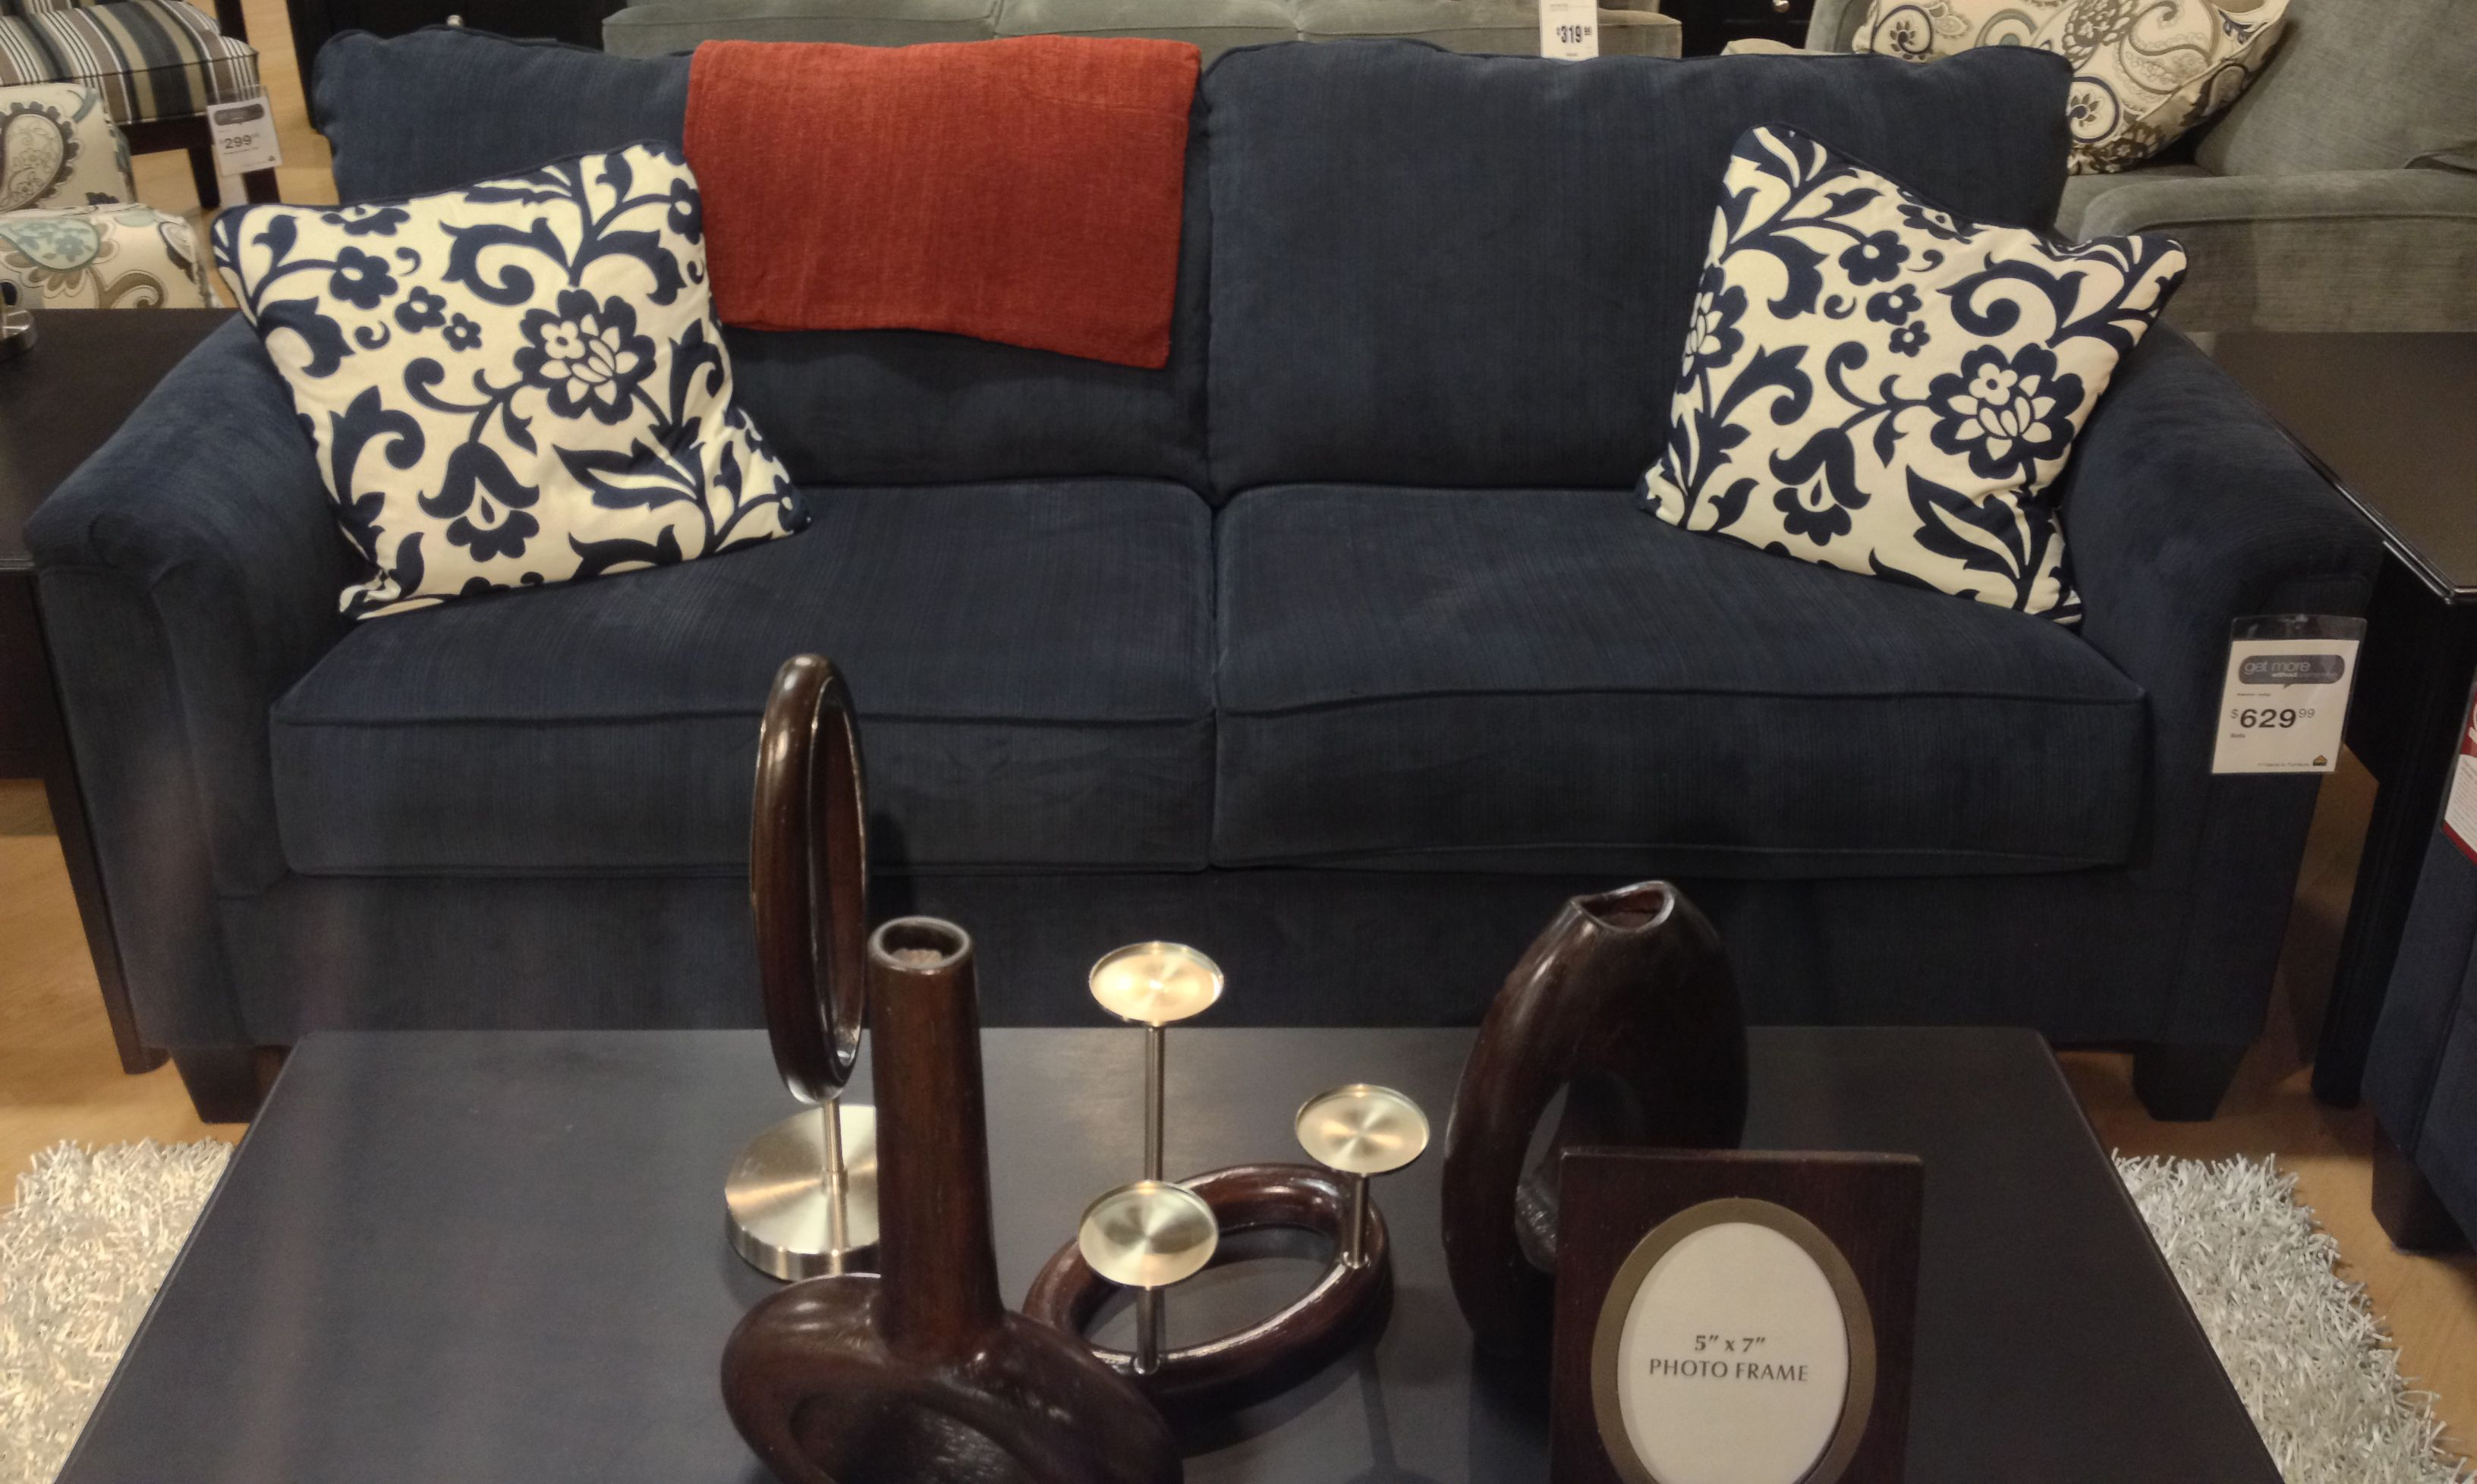 Marvelous Keendre Indigo Sofa At Ashley Furniture In Tricities Home Interior And Landscaping Eliaenasavecom